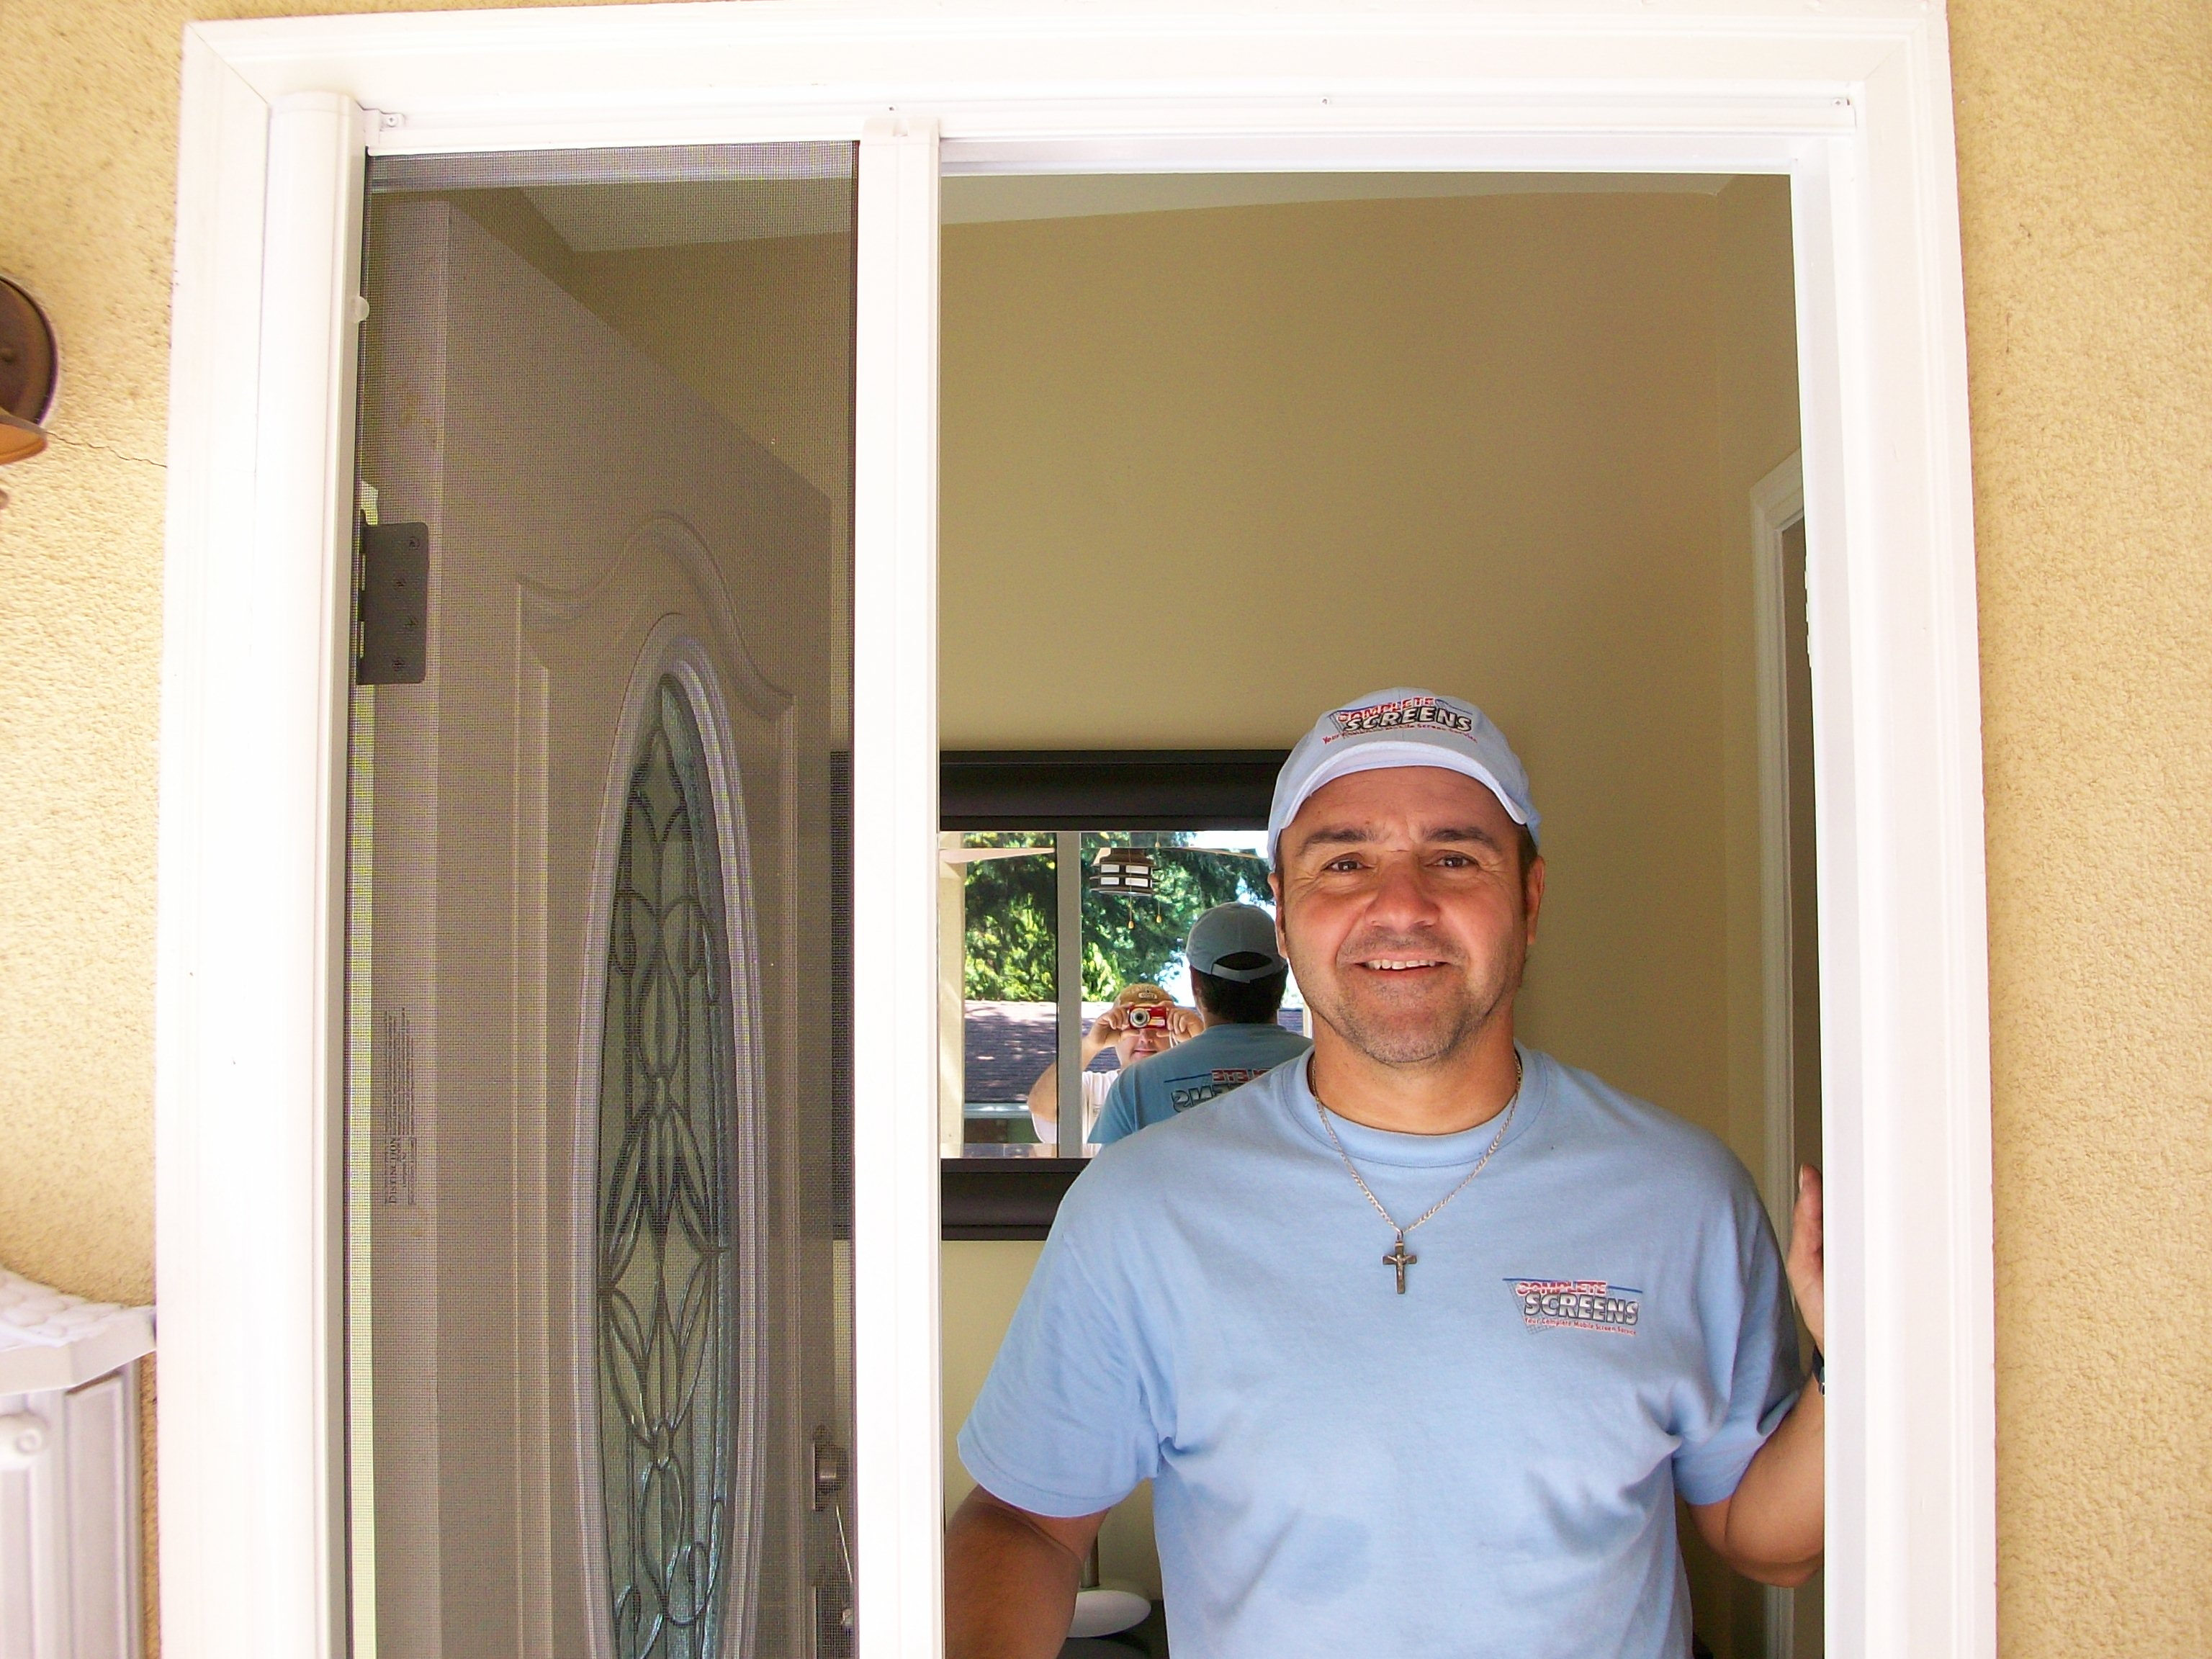 Retractable Screen Doors with ornament on glass and silver handle